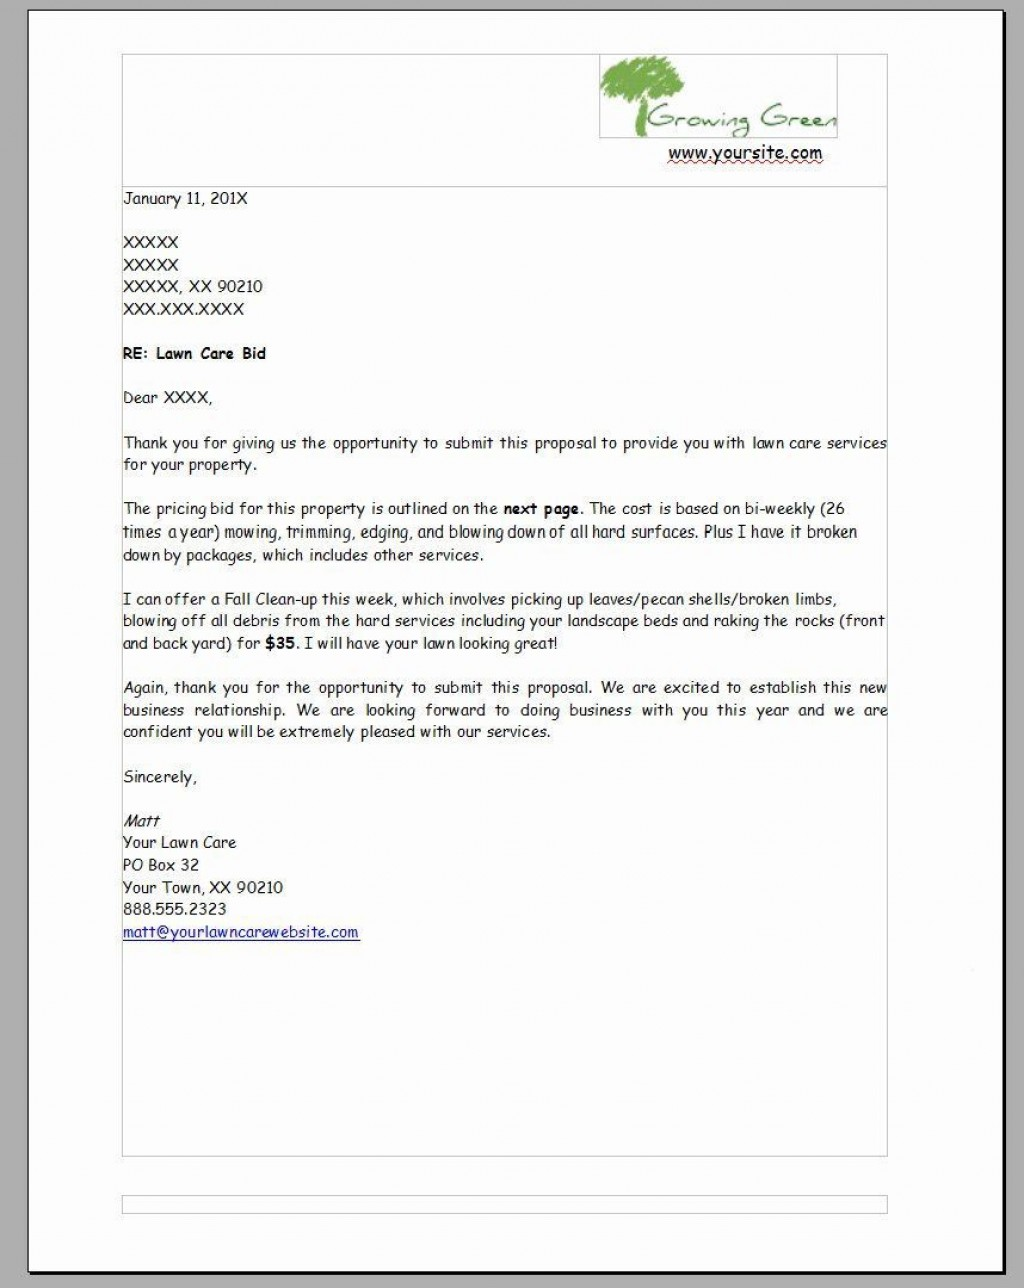 007 Striking Lawn Care Bid Template Picture  Sheet Commercial Service Proposal FreeLarge